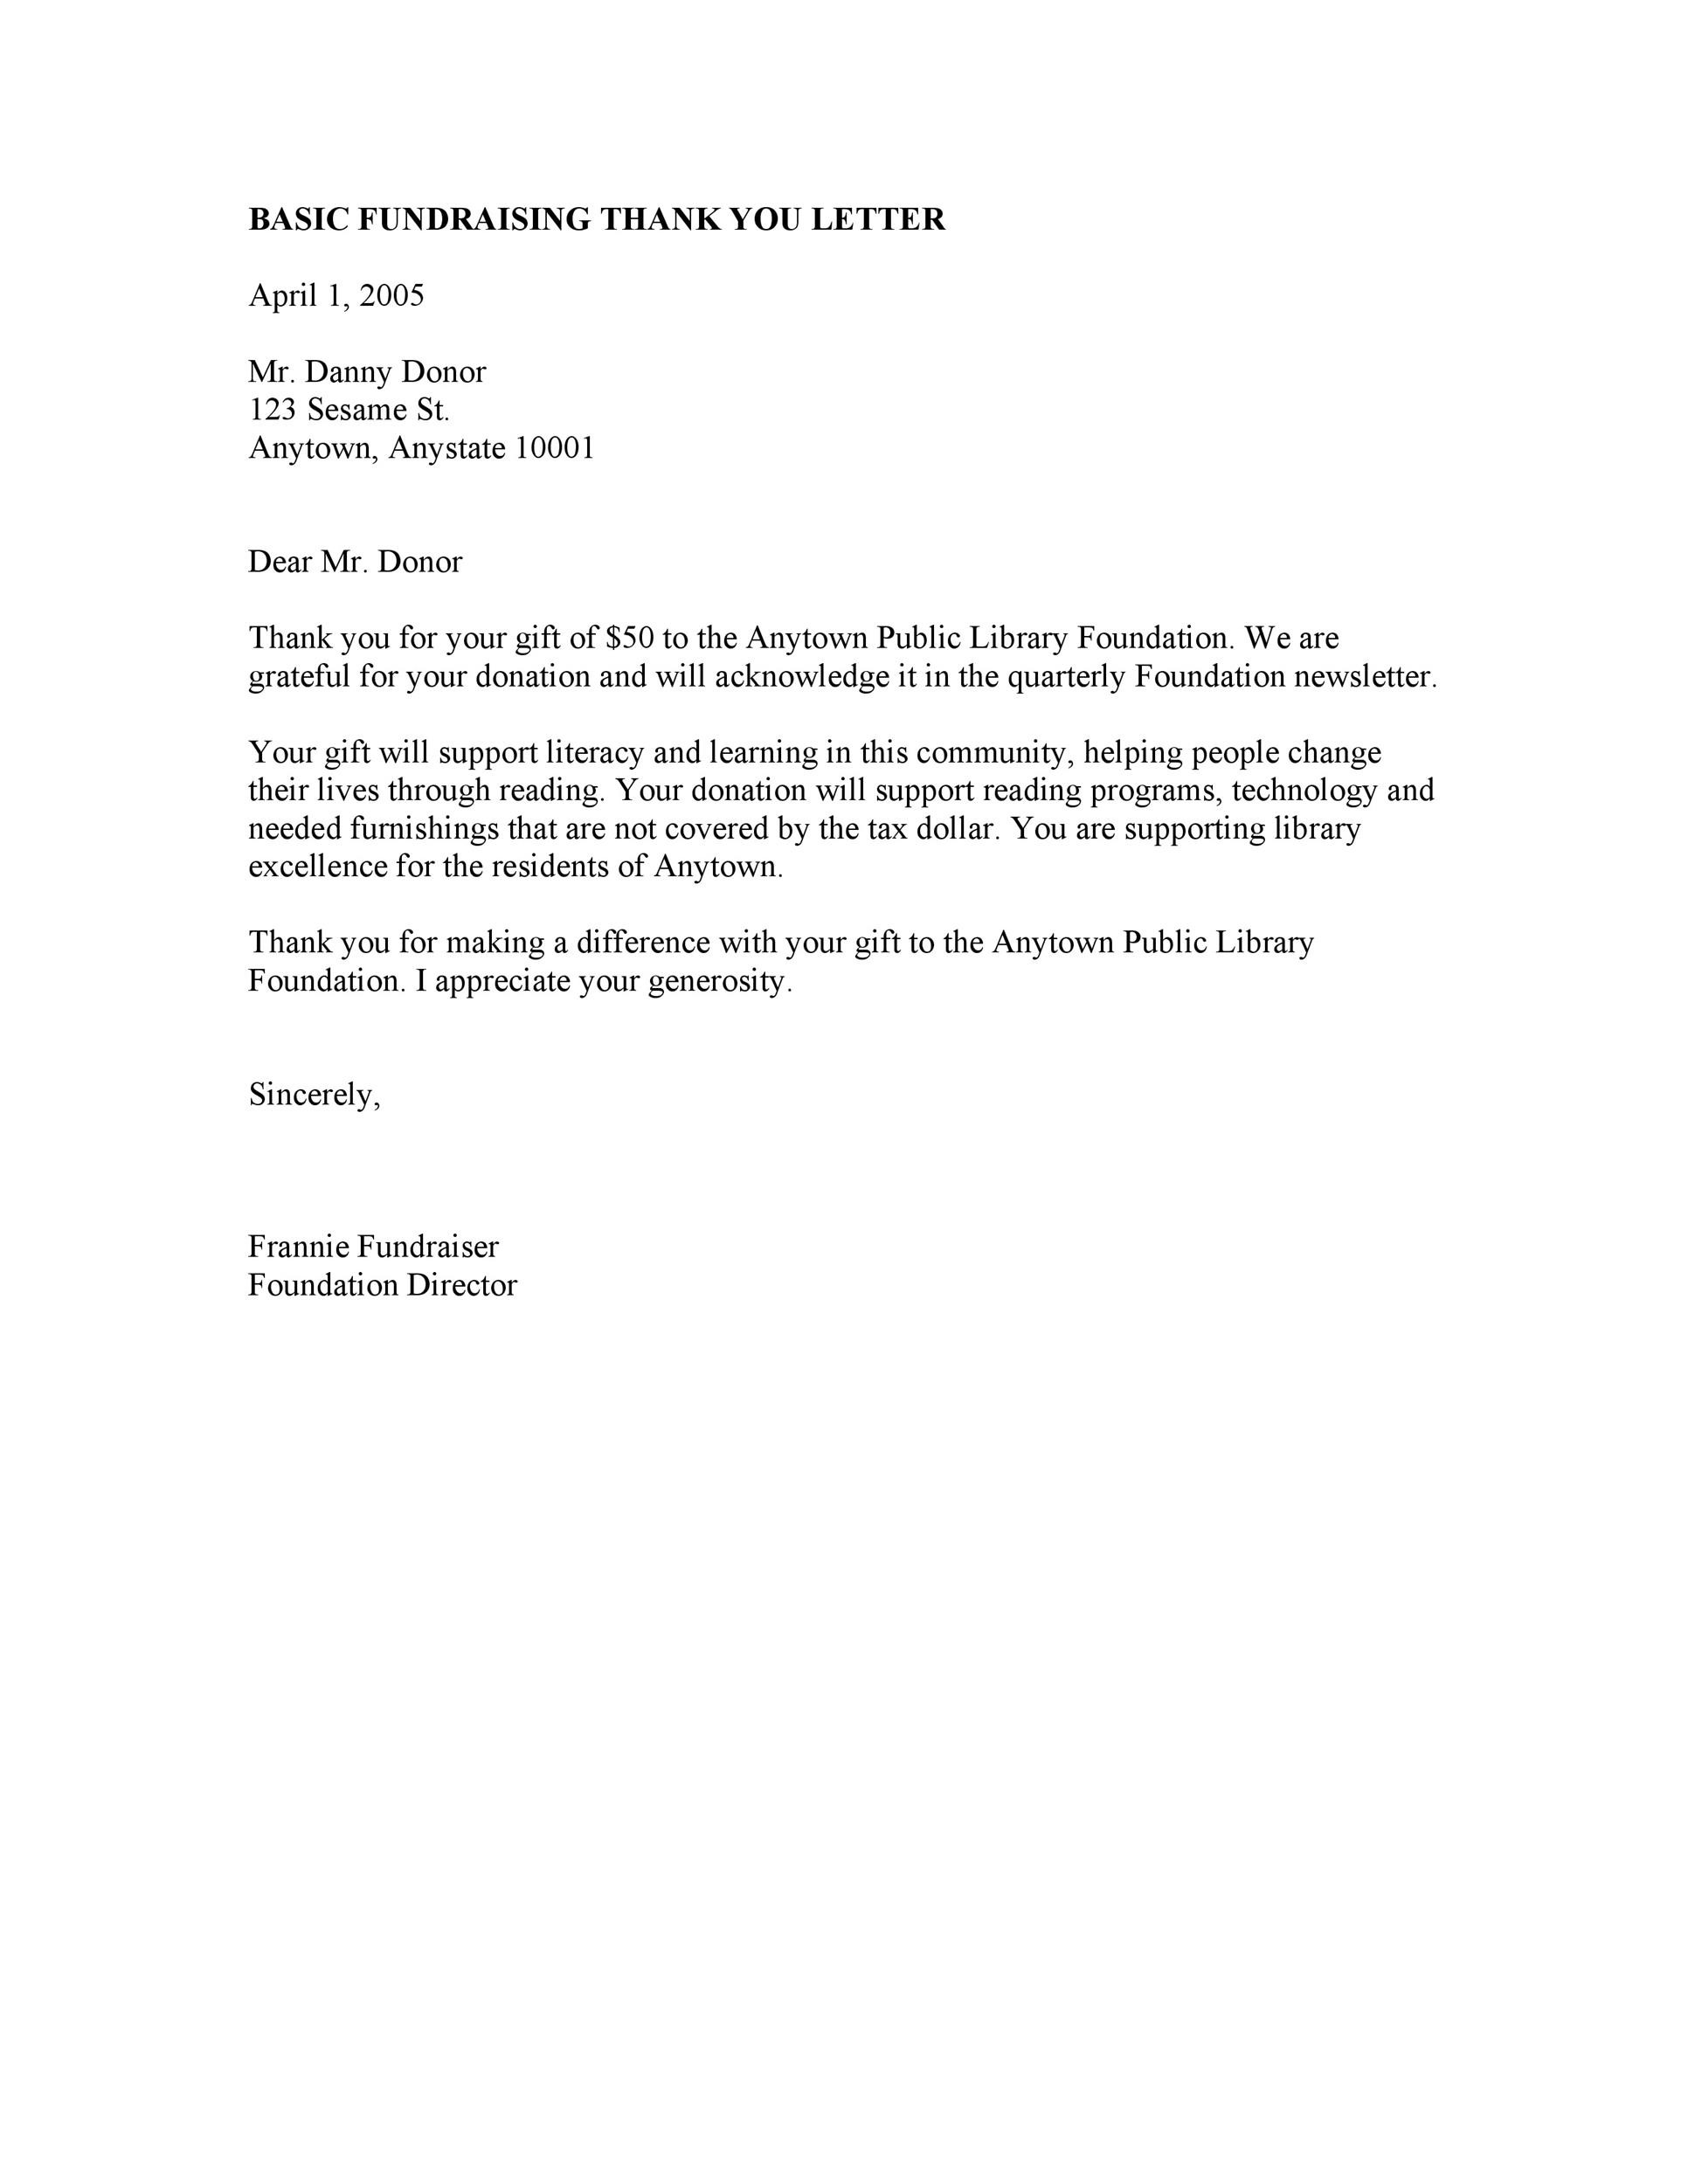 30 Thank you Letter Templates ScholarshipDonationBoss – Thank You Letter for Scholarships